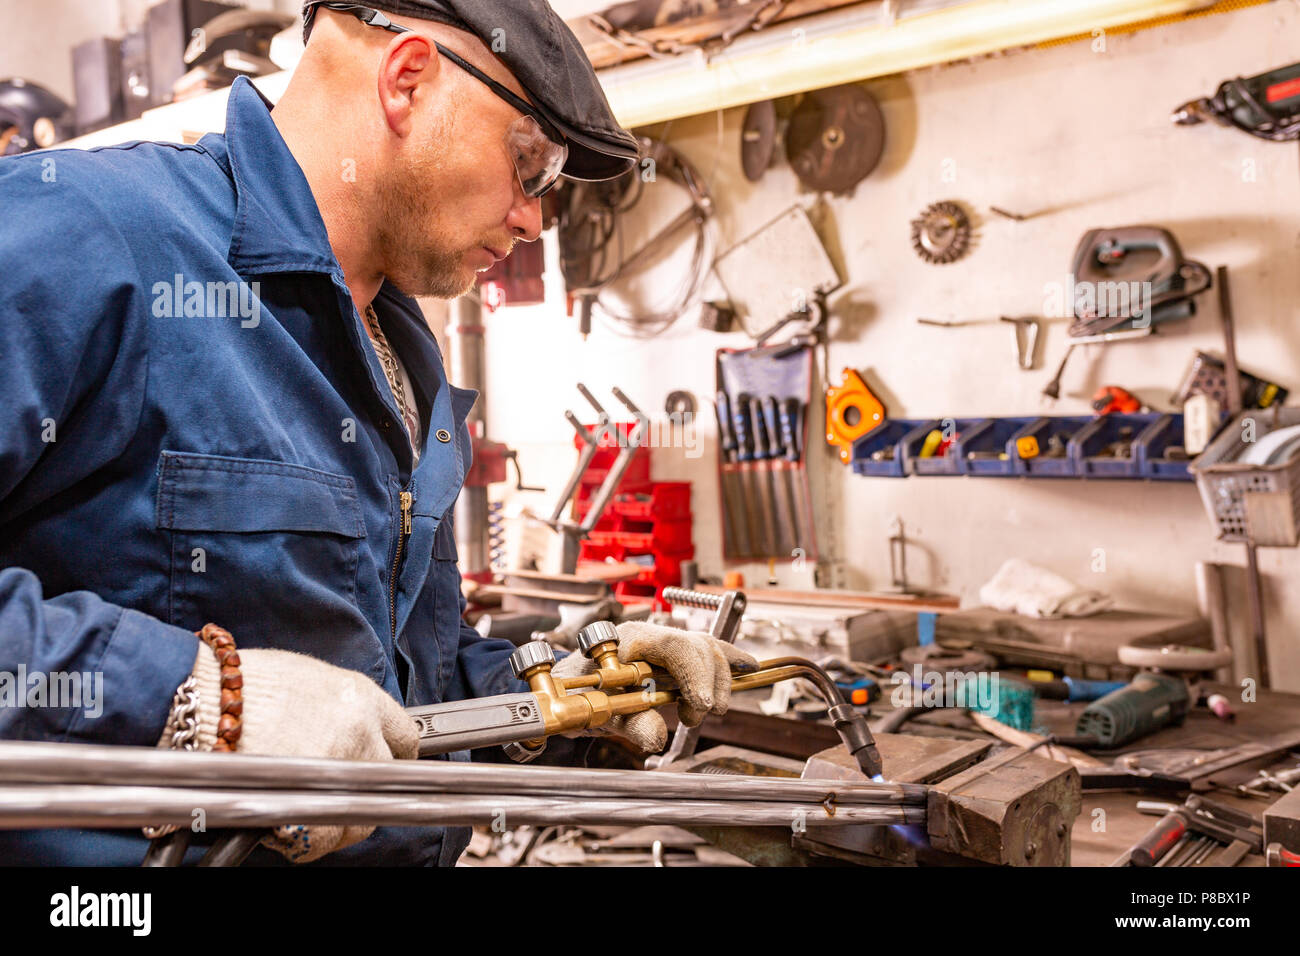 The young man, is going to cut a piece of metal autogenous welding. - Stock Image